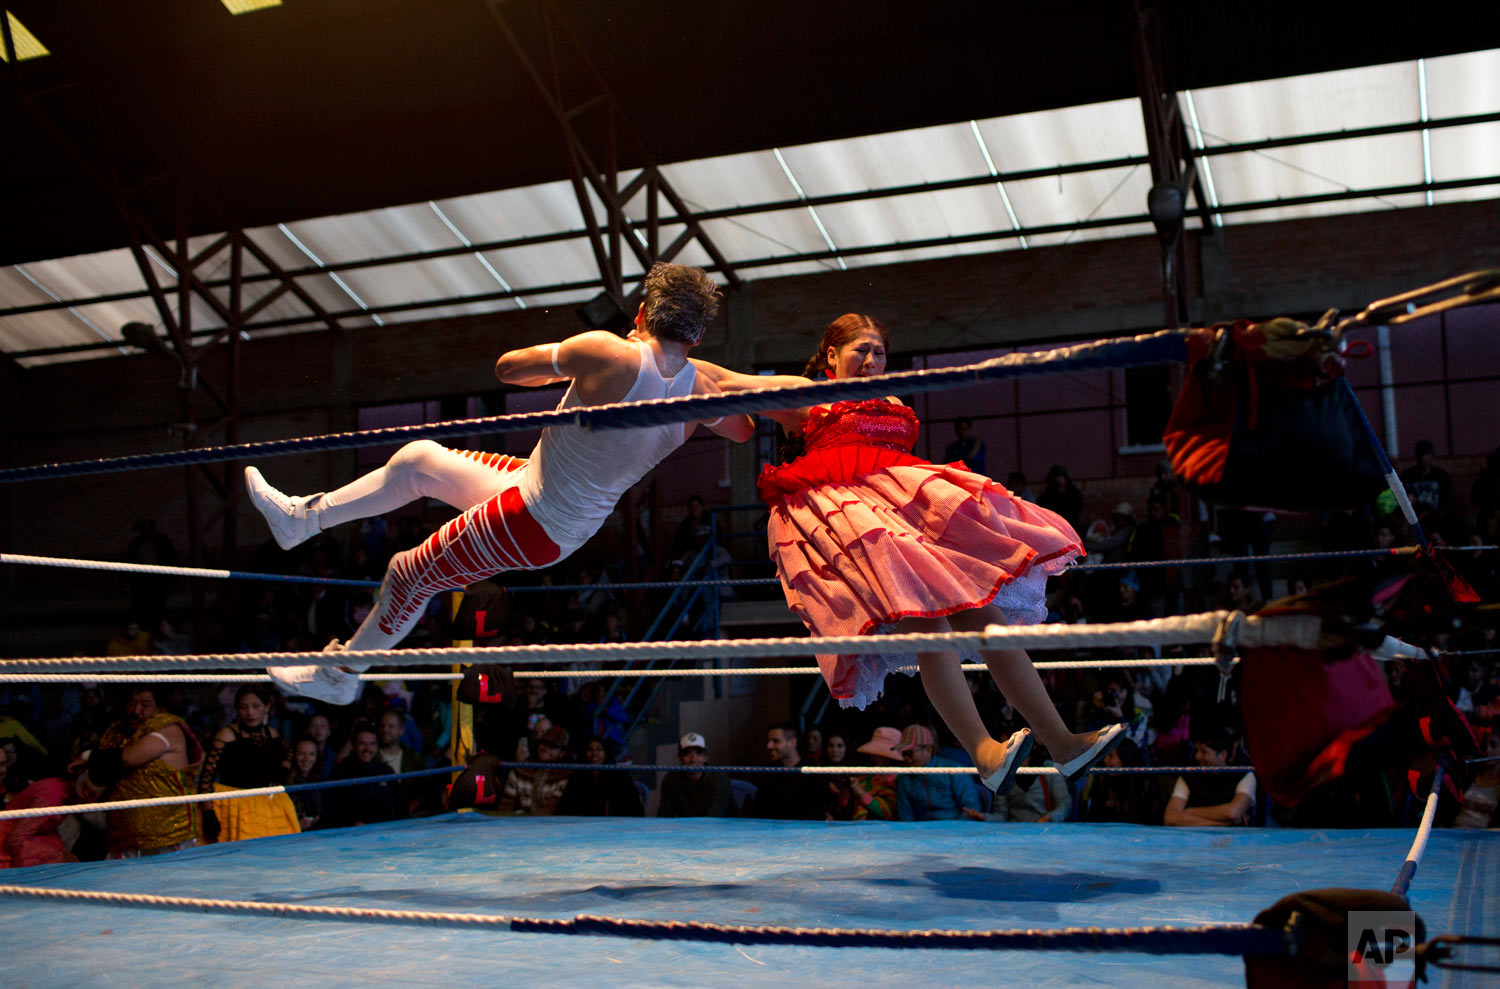 Veteran cholita wrestler Jennifer Dos Caras, 45, competes in the ring with Randy Four in El Alto, Bolivia, Jan. 21, 2019. (AP Photo/Juan Karita)